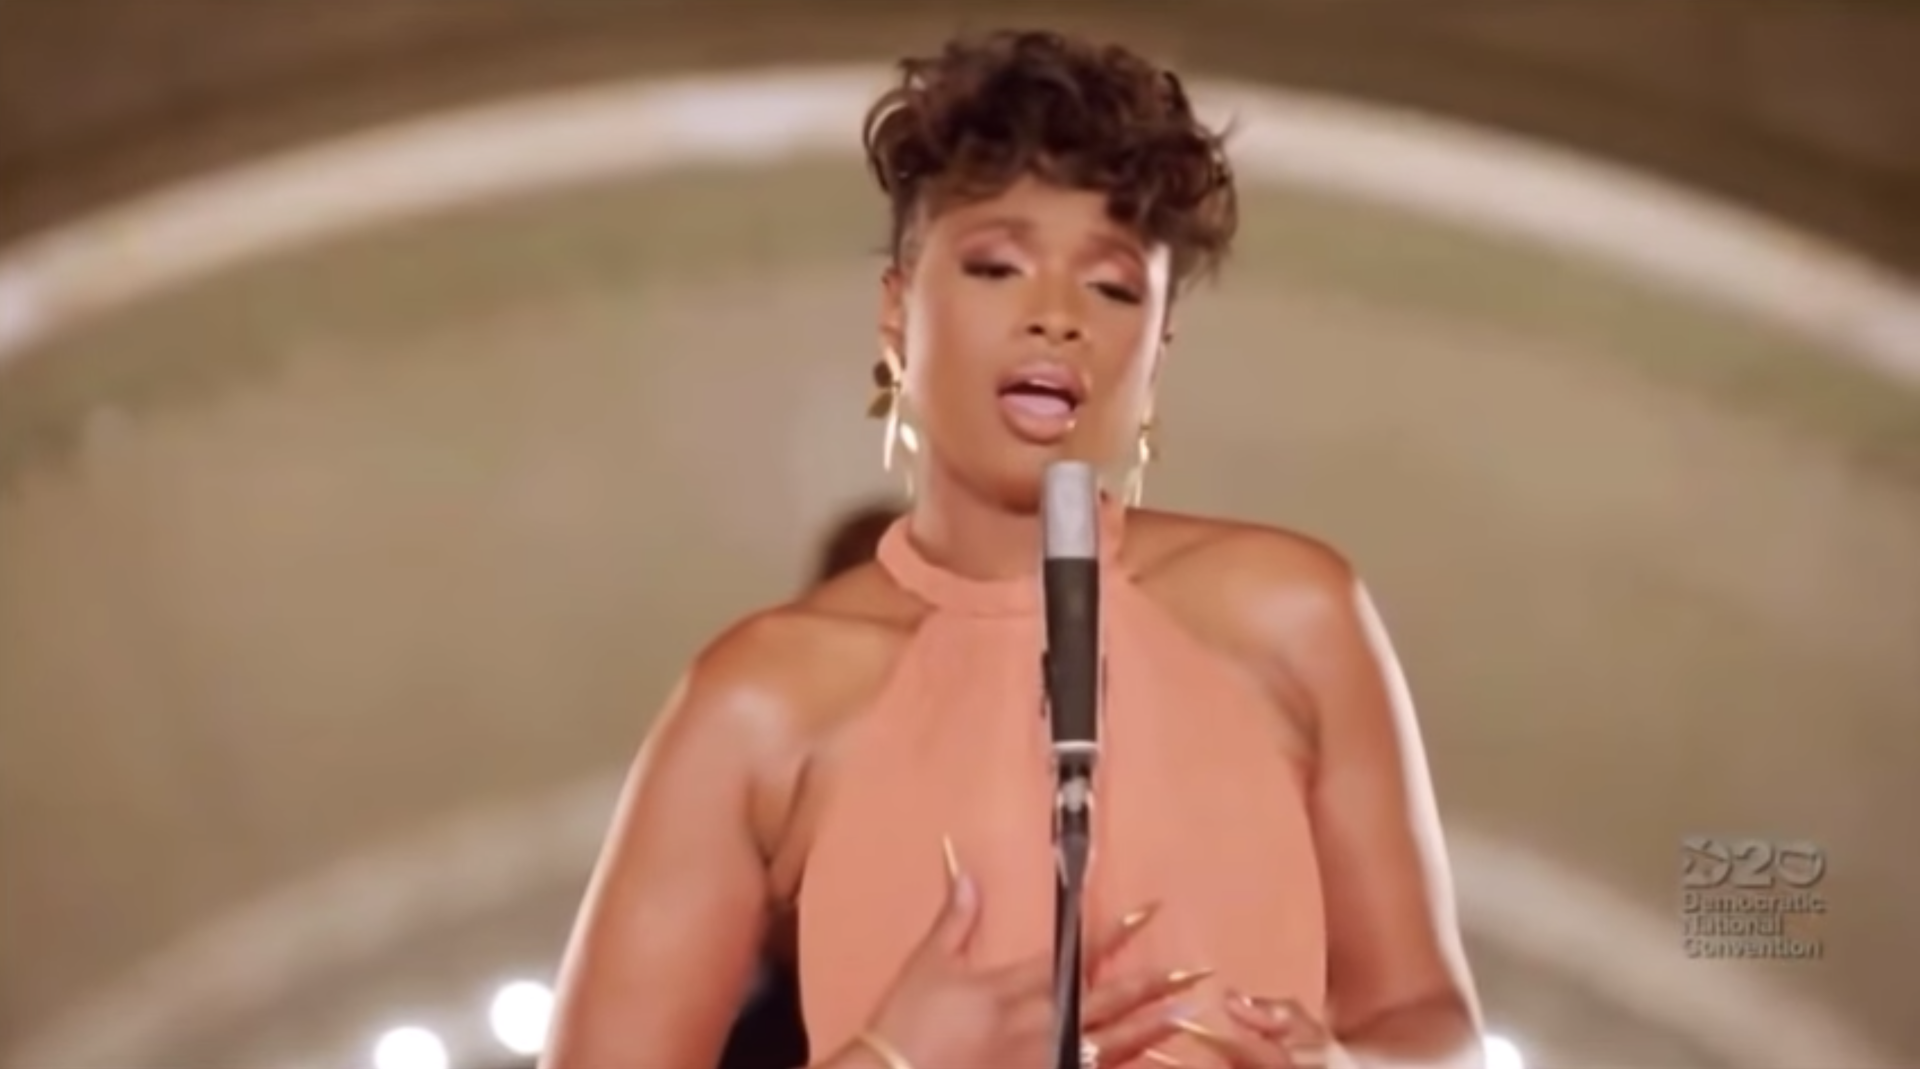 Jennifer Hudson's Performance Of 'A Change Is Gonna Come' During The DNC Gave Us Chills